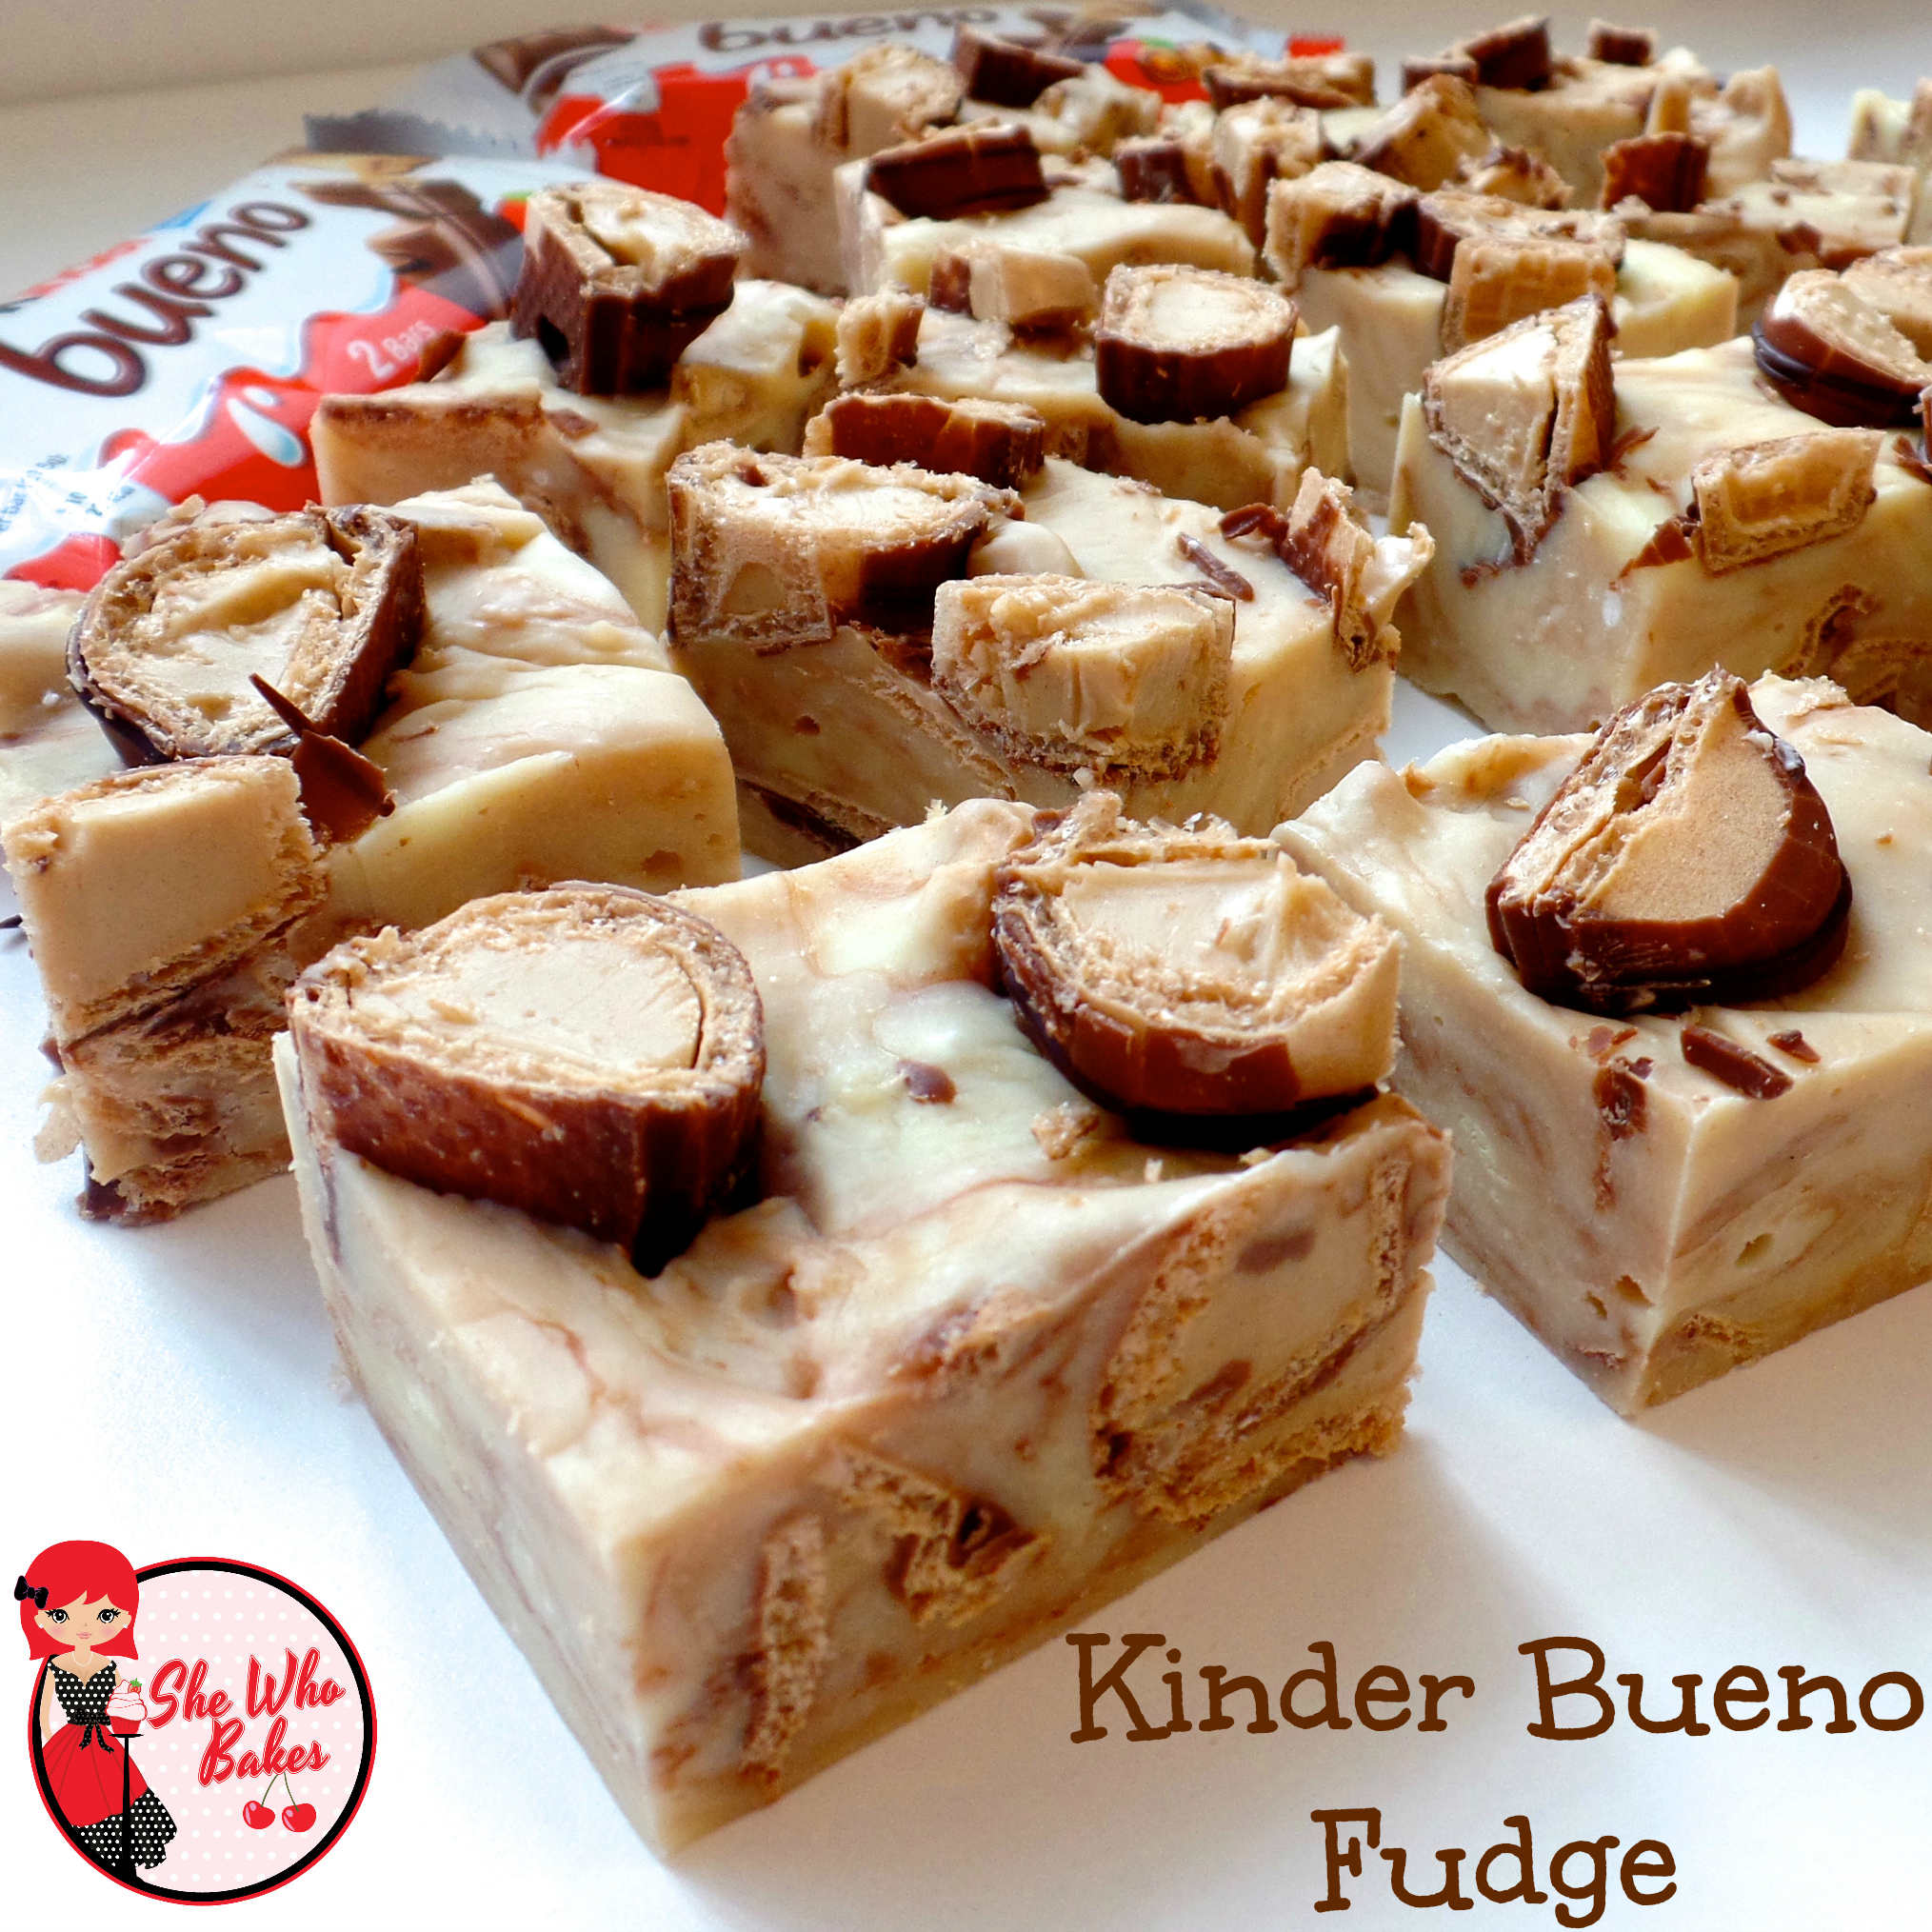 How To Make A Kinder Bueno Cake